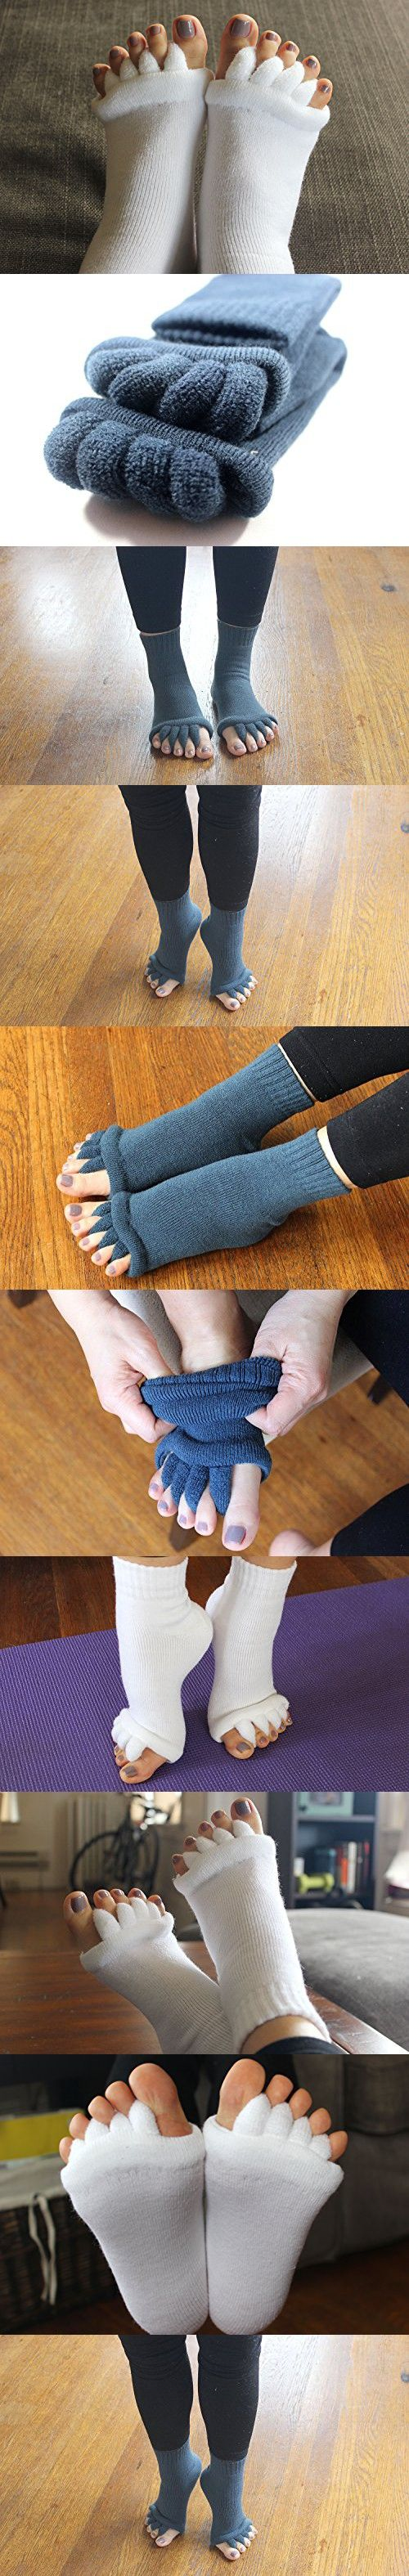 Toe Separator Massage Socks for Foot Alignment, Great for Sore Feet and Diabetics by TRiiM Fitness with FREE Exercise guide!